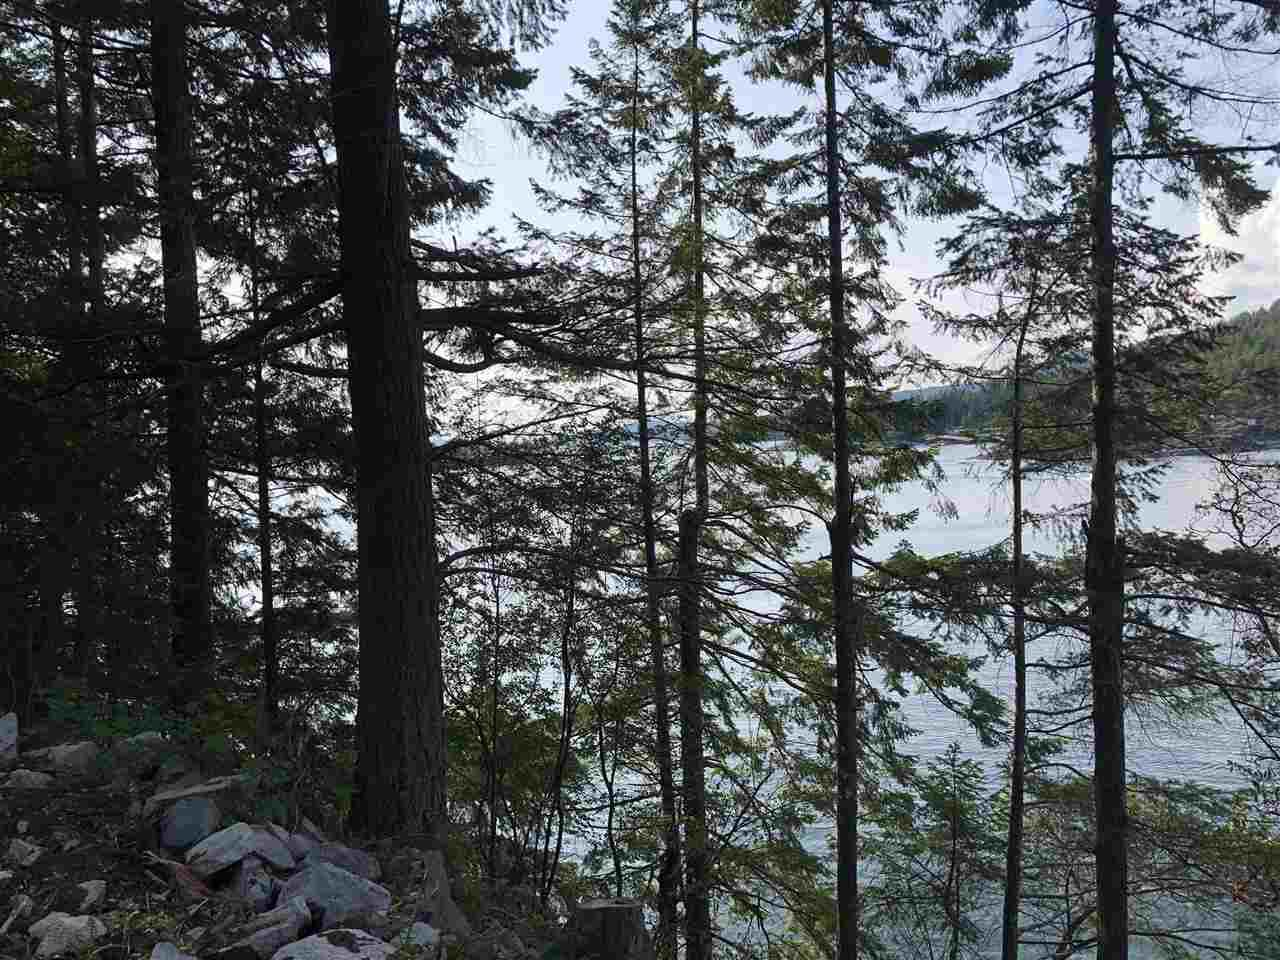 """Photo 10: Photos: 4147 FRANCIS PENINSULA Road in Madeira Park: Pender Harbour Egmont Land for sale in """"BEAVER ISLAND"""" (Sunshine Coast)  : MLS®# R2393294"""